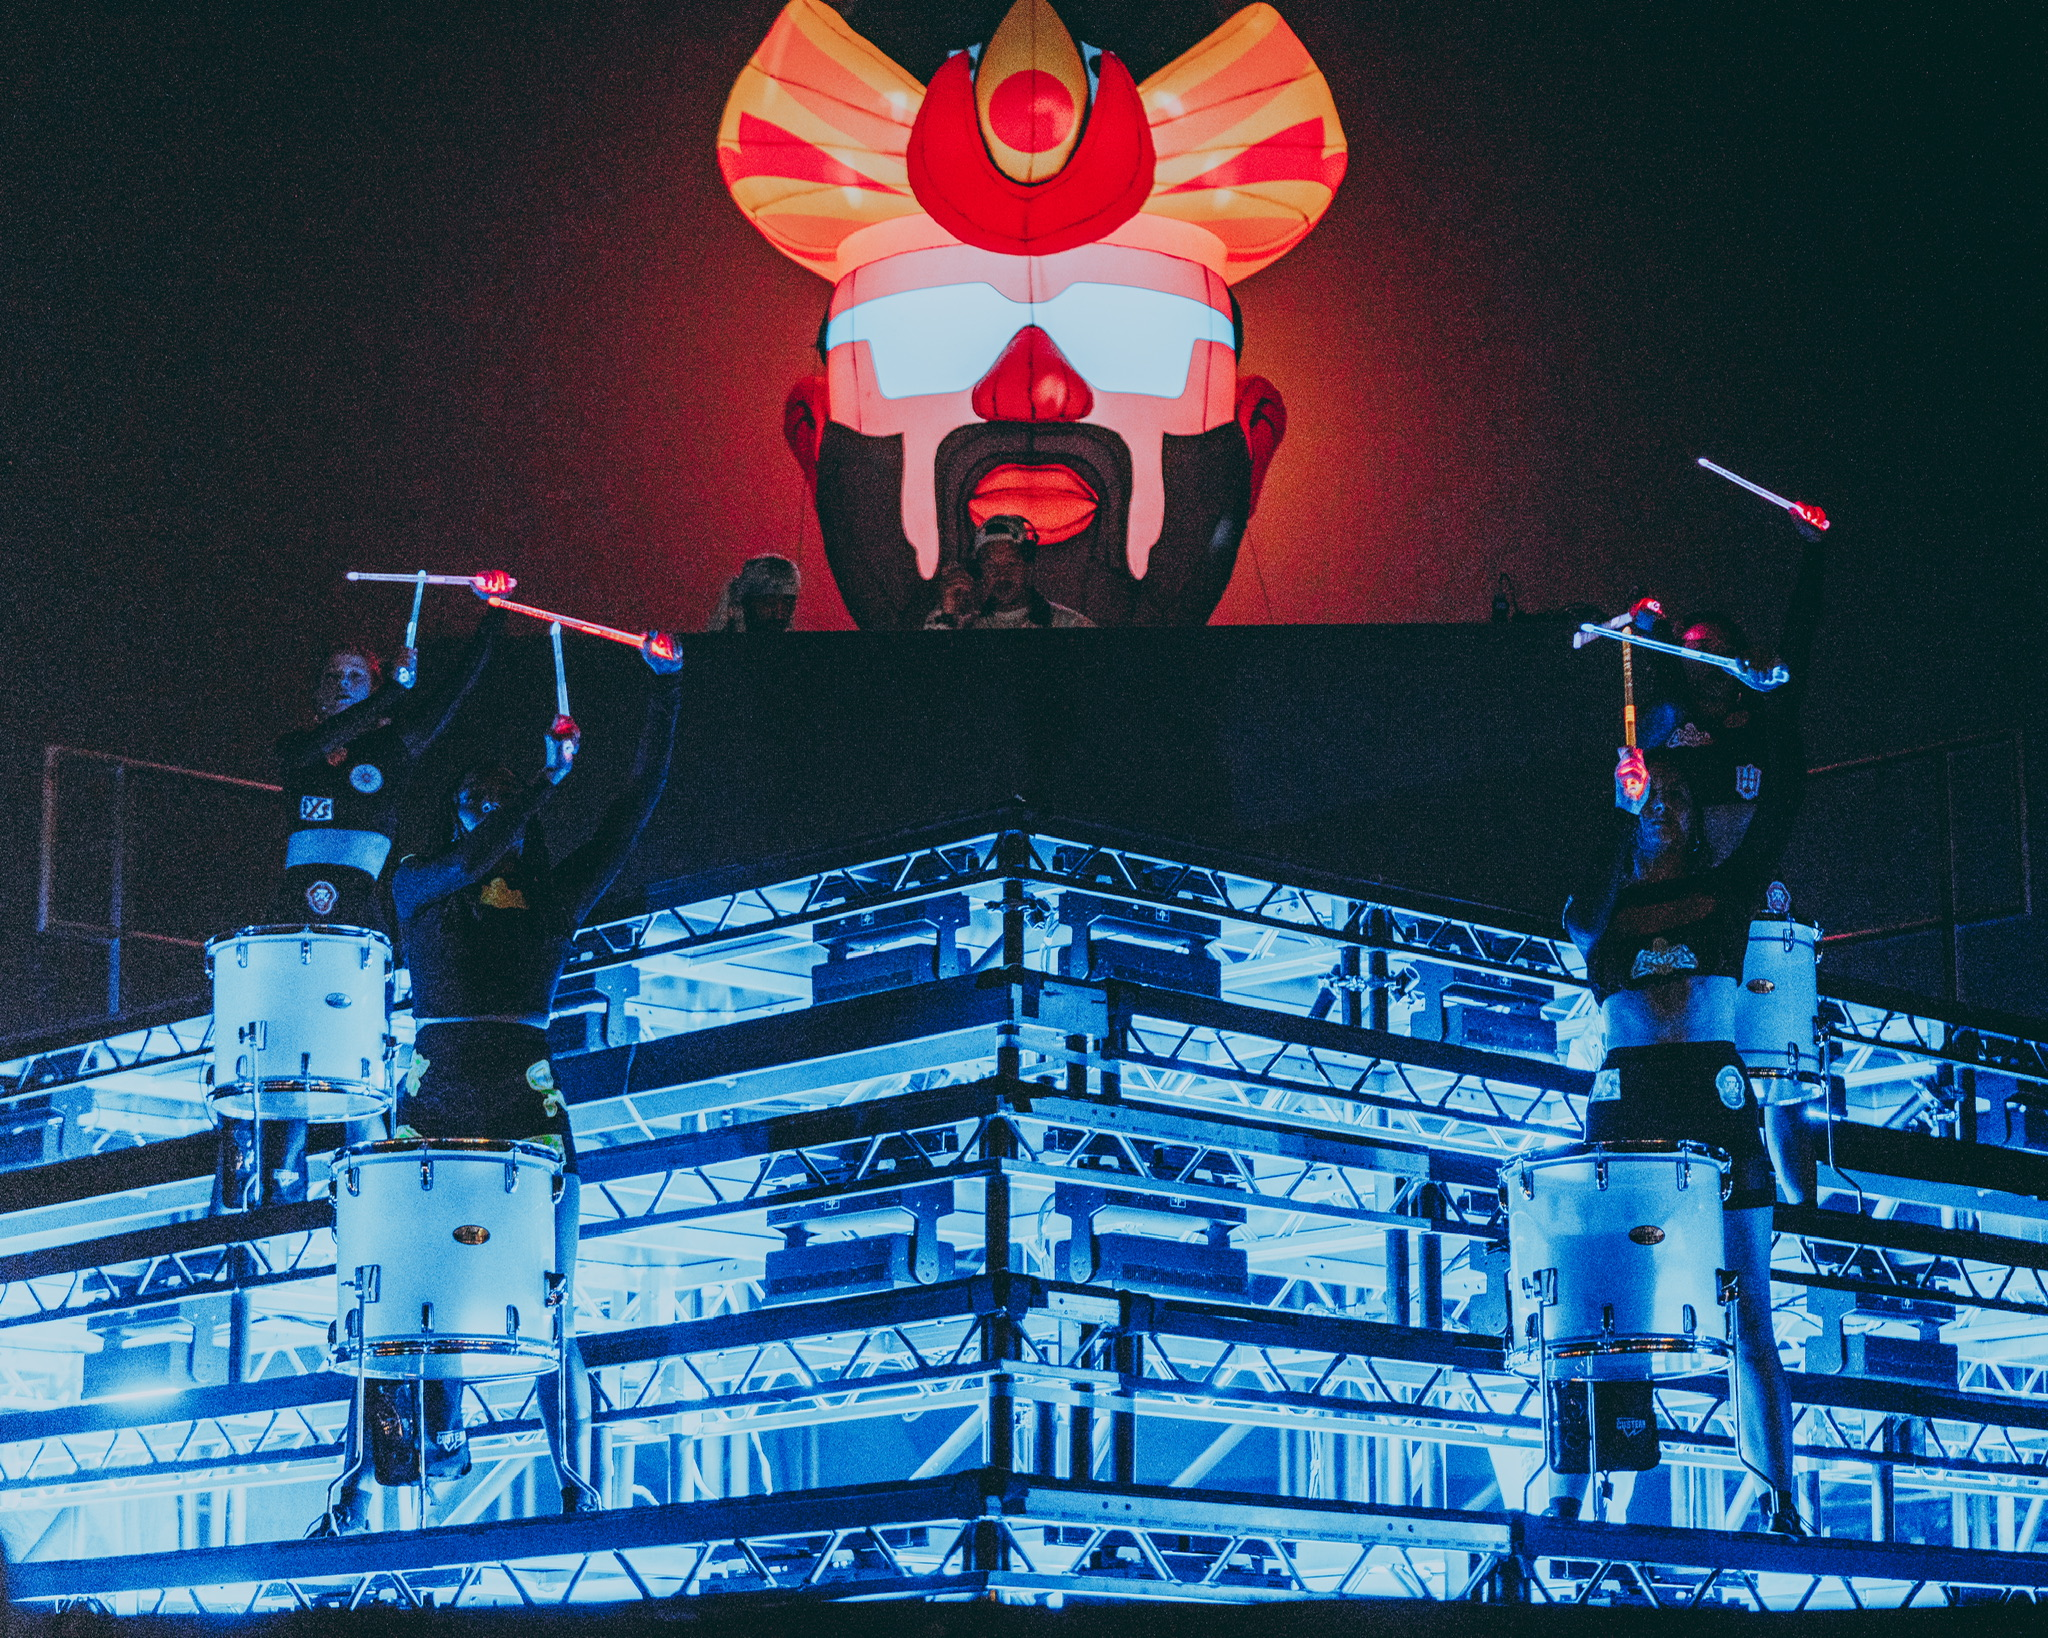 Major Lazer, New York, 2019